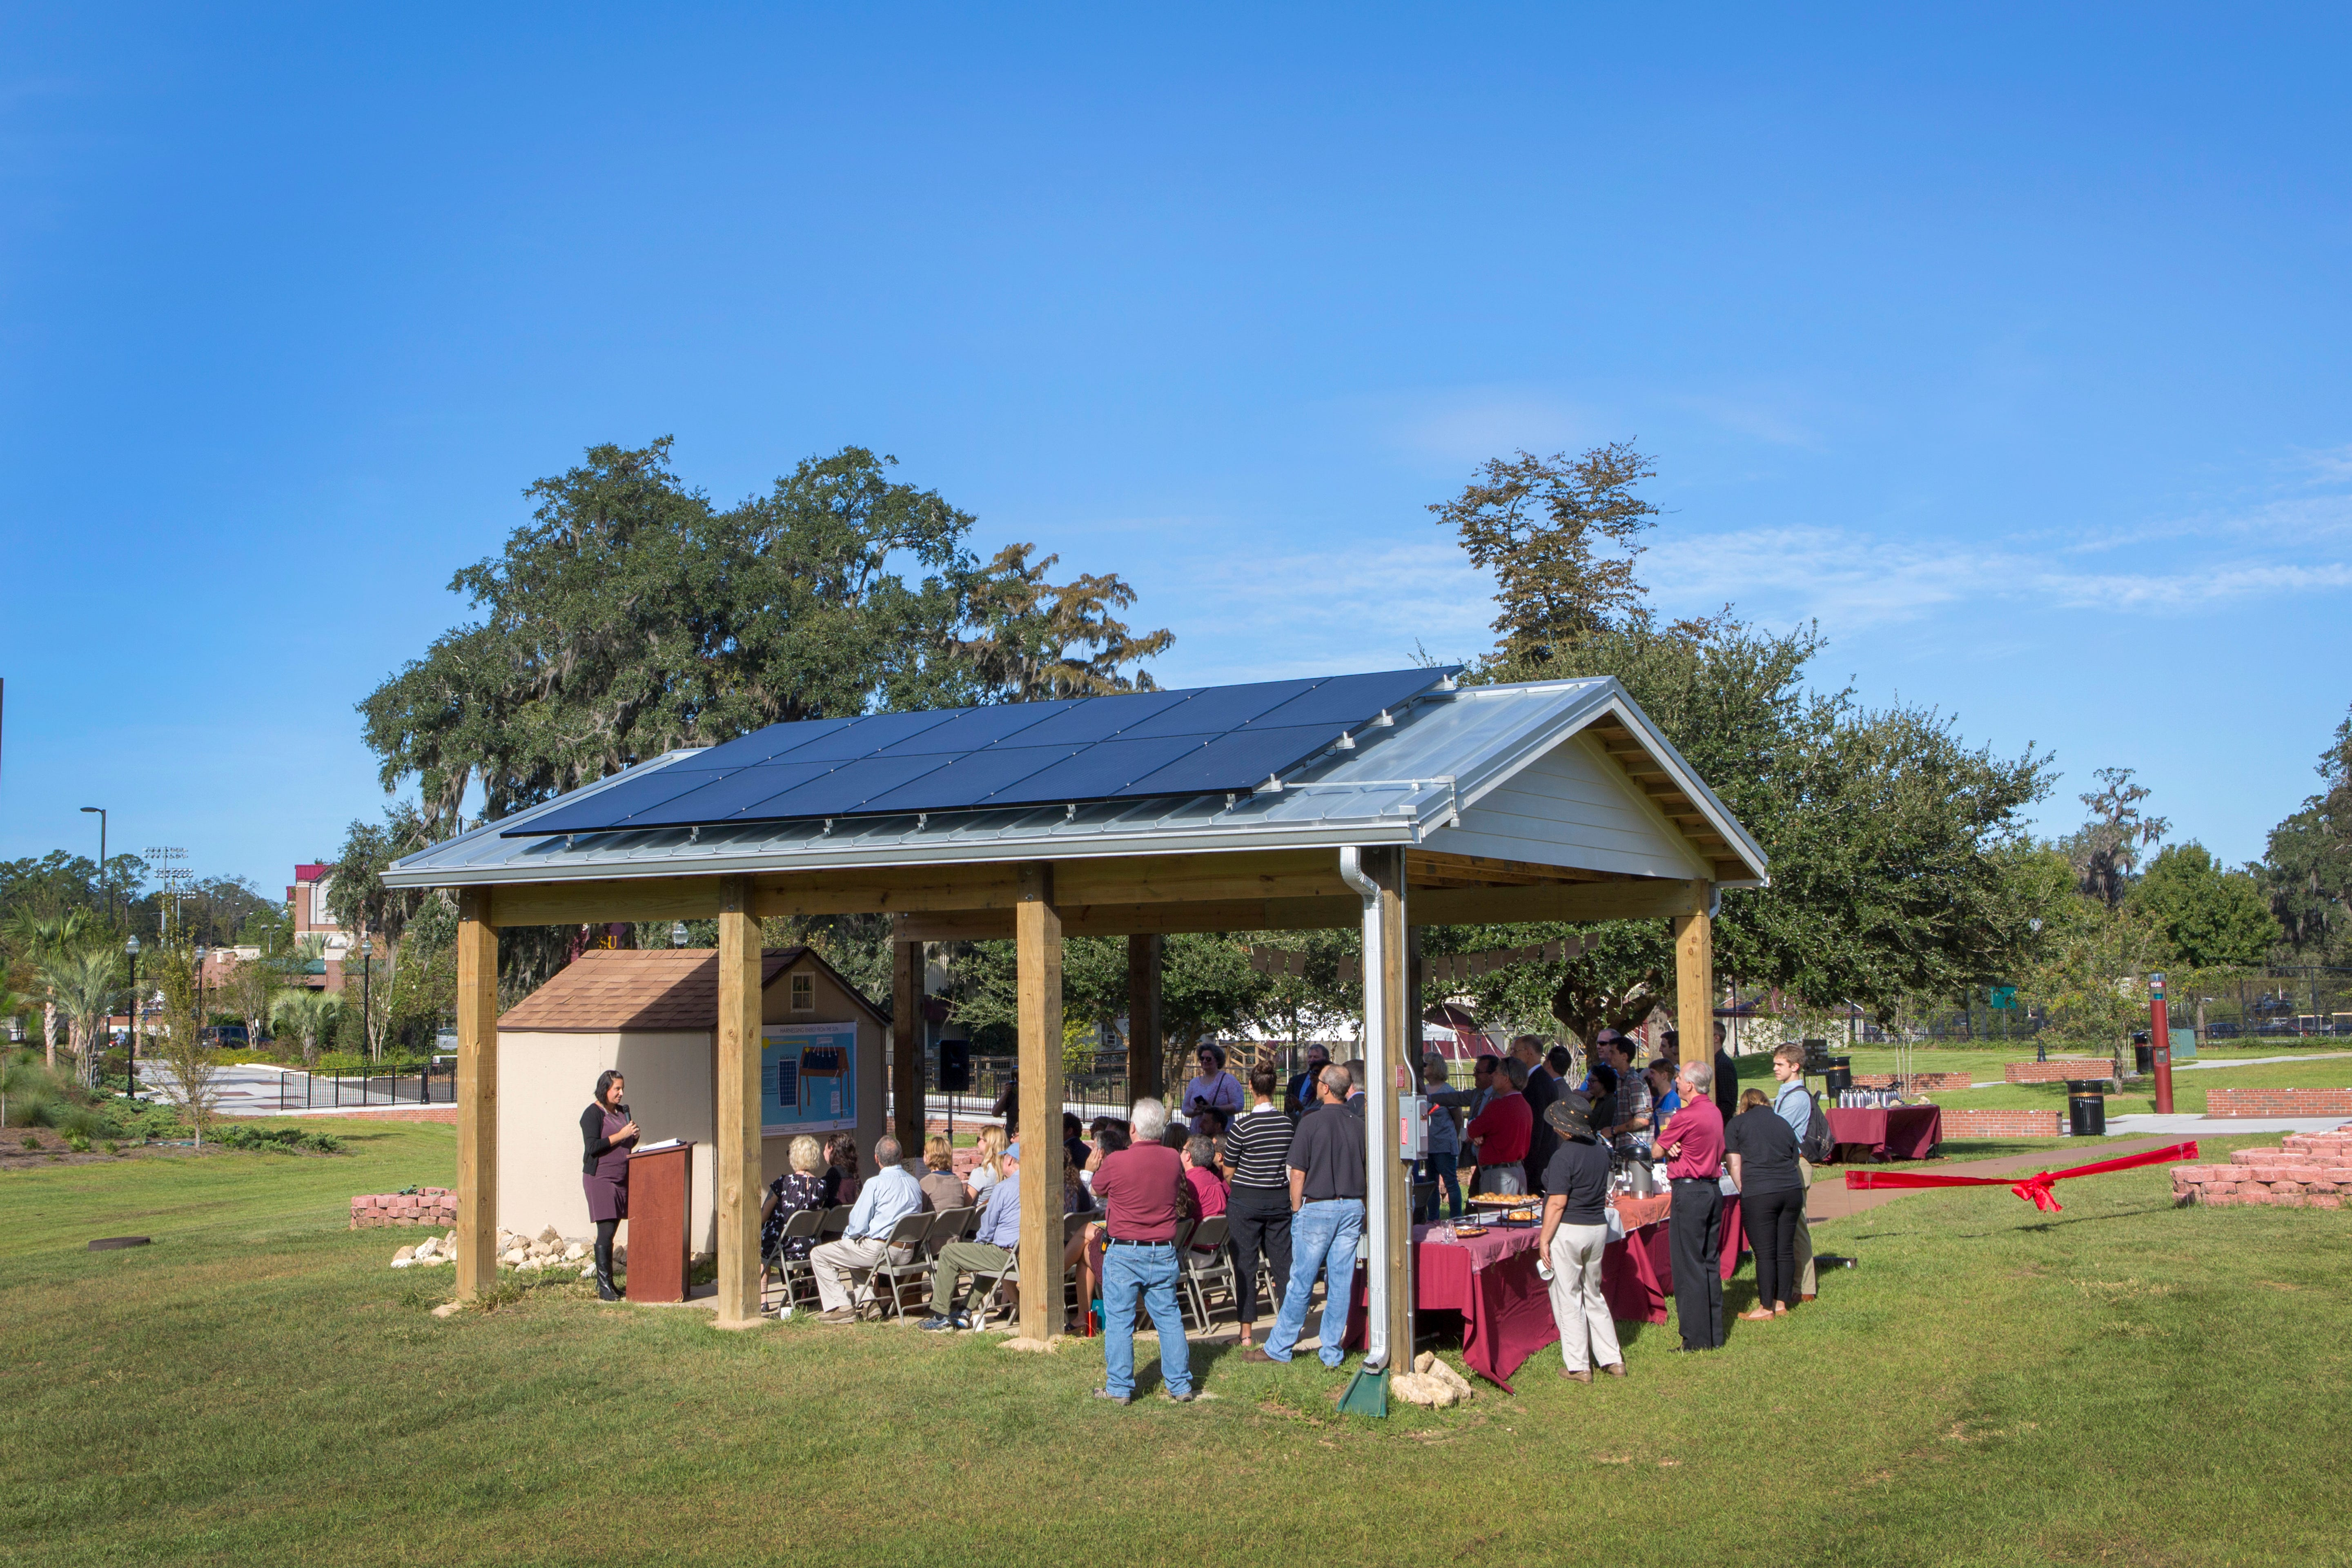 FSU FAMU TCC and LCS powered up over agreements with cityu0027s solar farm & FSU FAMU TCC and LCS powered up over agreements with cityu0027s ...